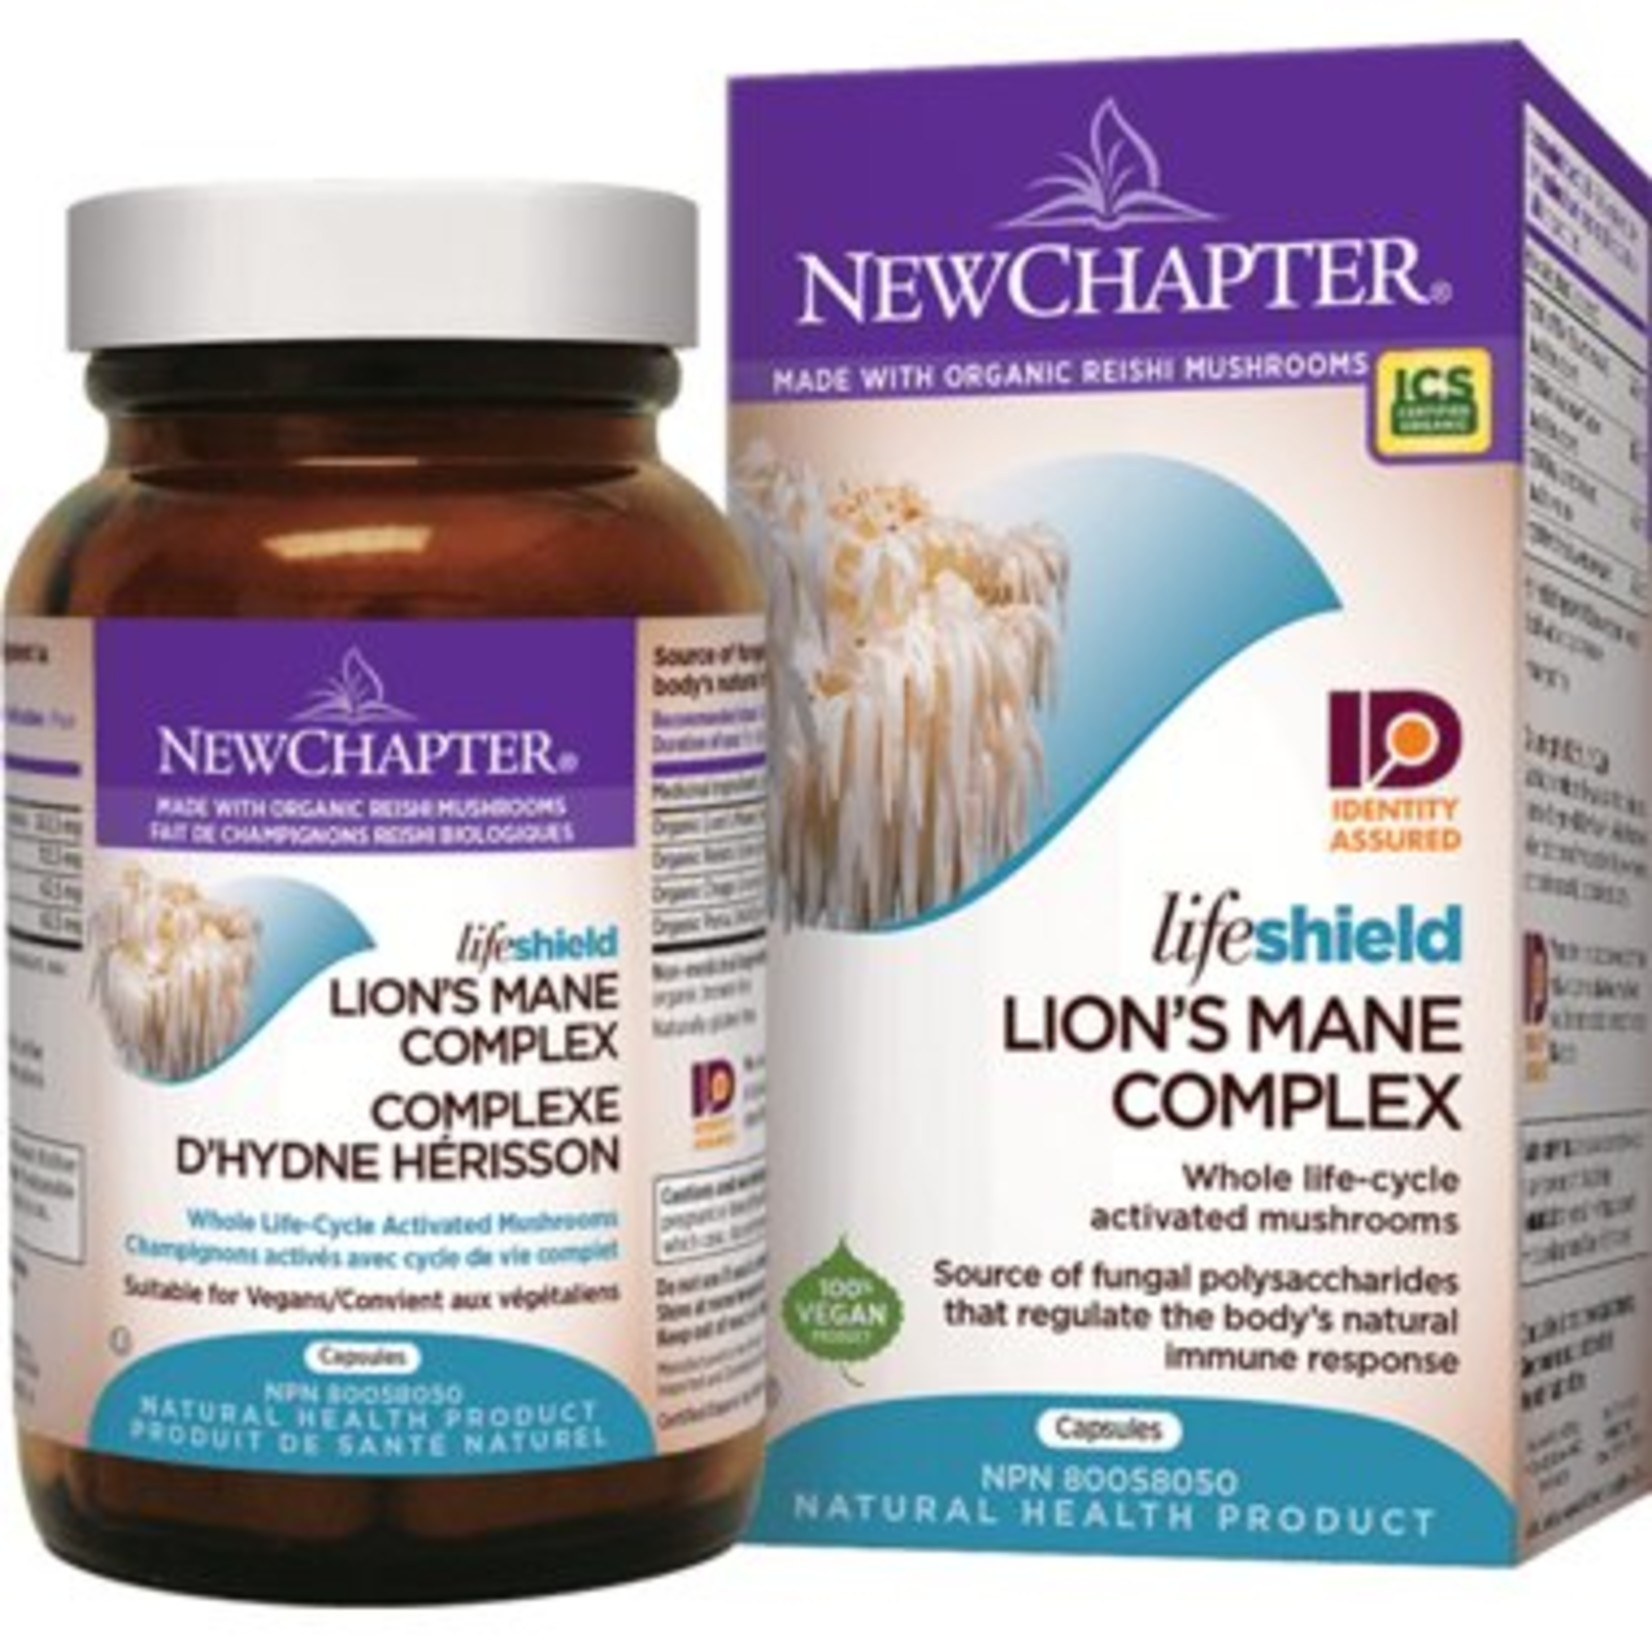 New Chapter Lion's Mane Complex